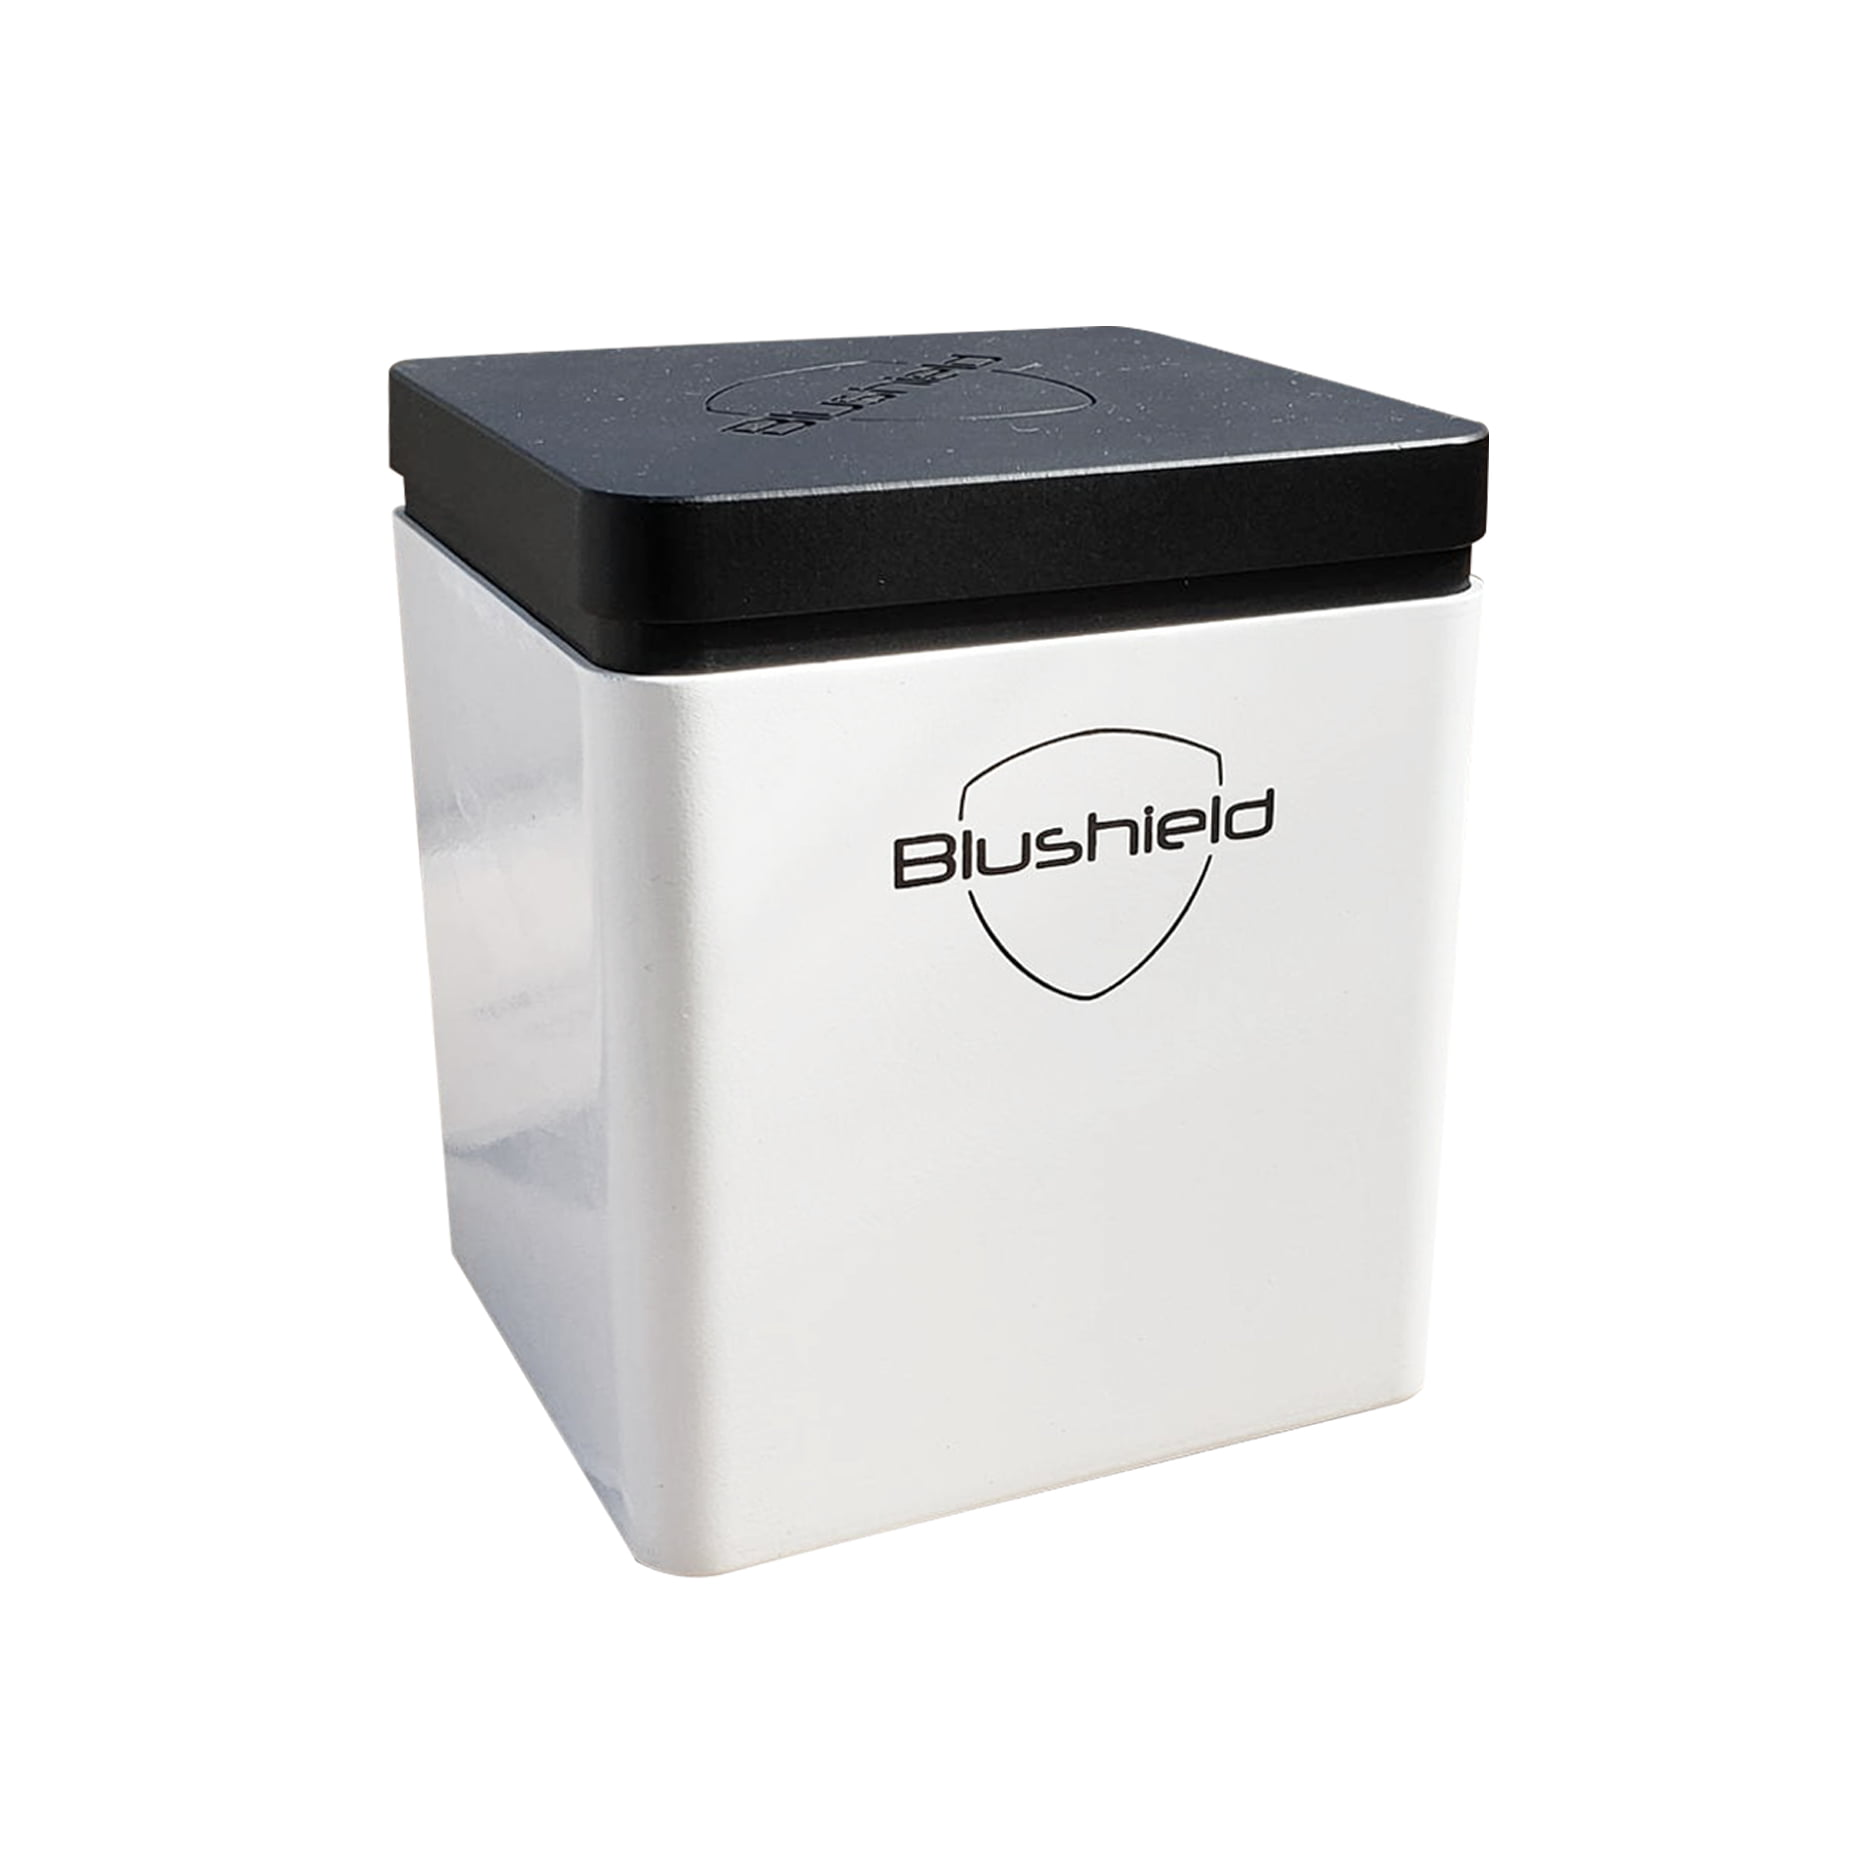 Tesla Gold Series Cube - Blushield Canada